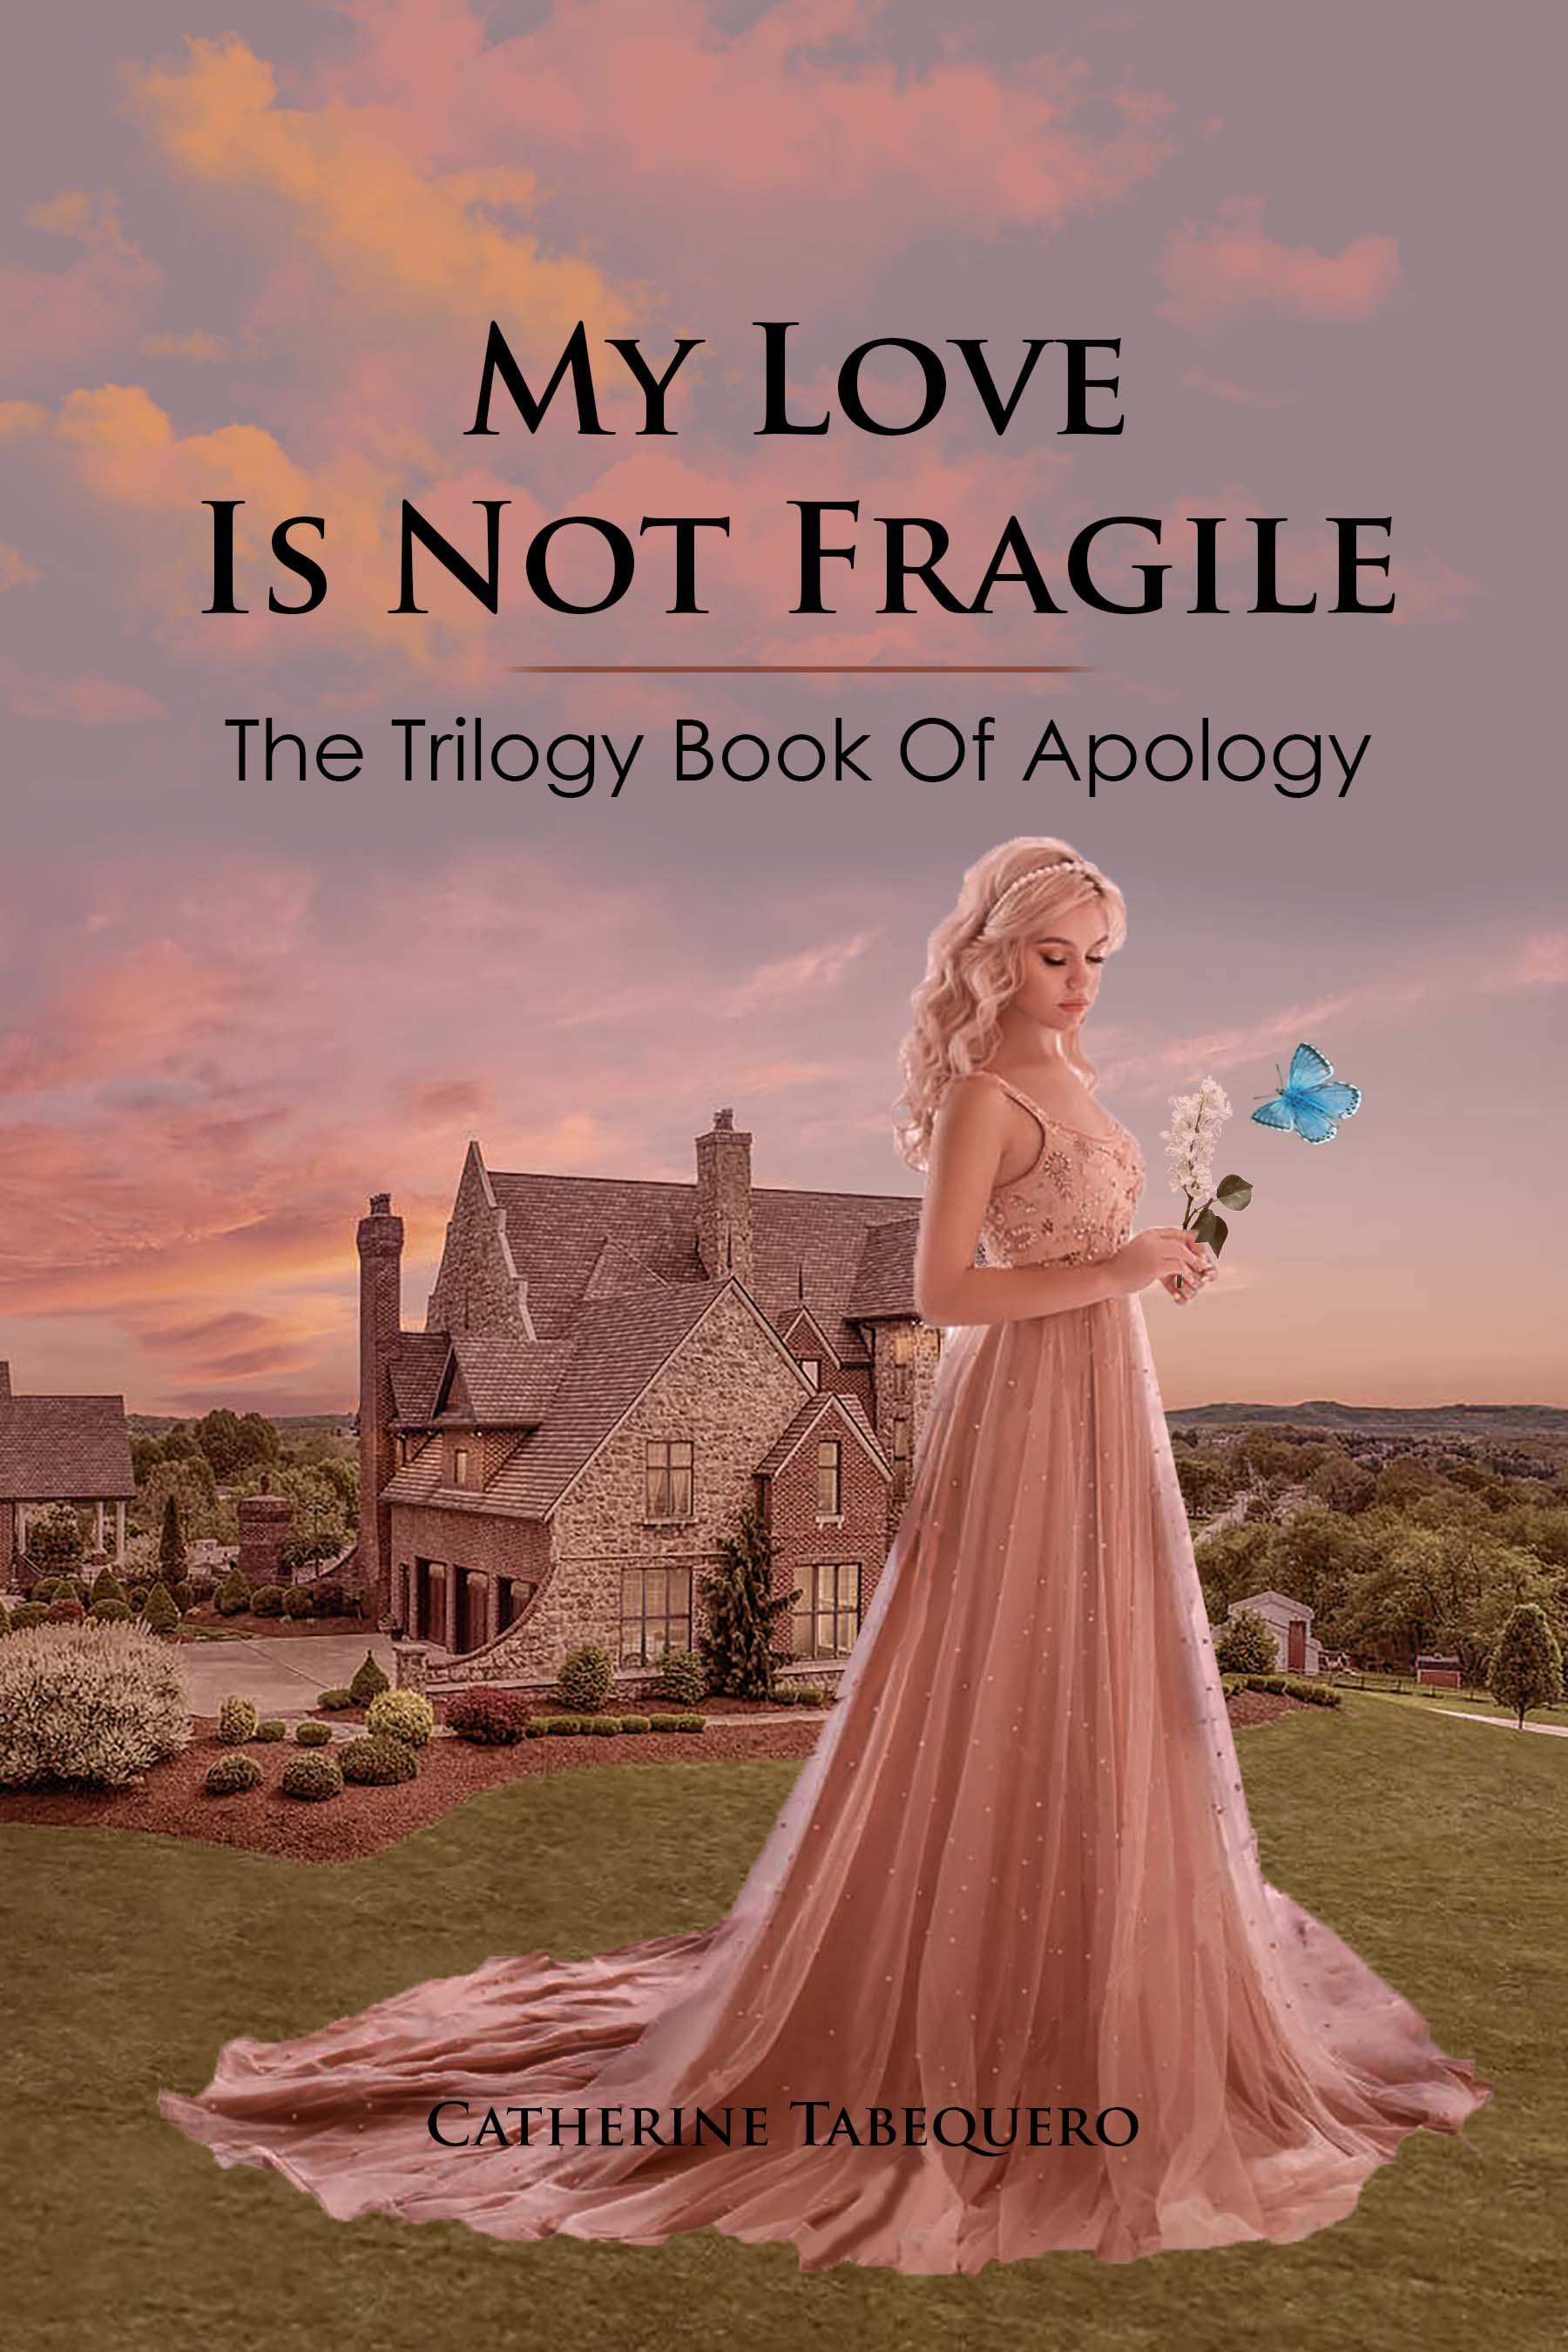 My Love is Not Fragile (The Trilogy Book of Apology)